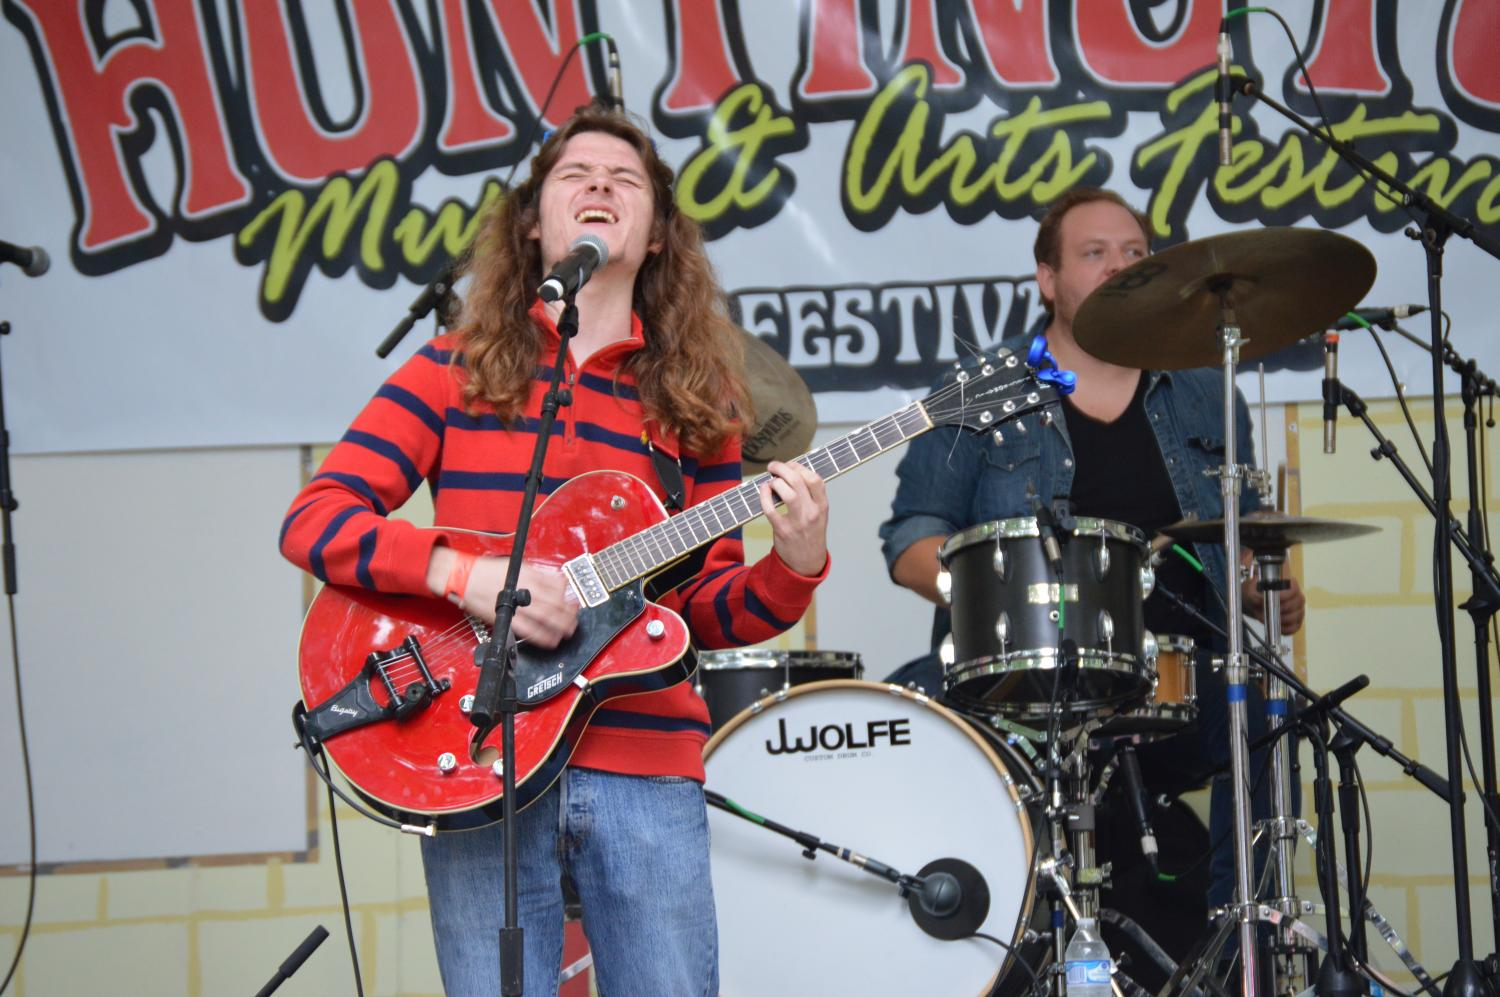 Corey Hatton of the band Of the Dell preformed for the second time at the Huntington Music and Arts Festival Saturday.